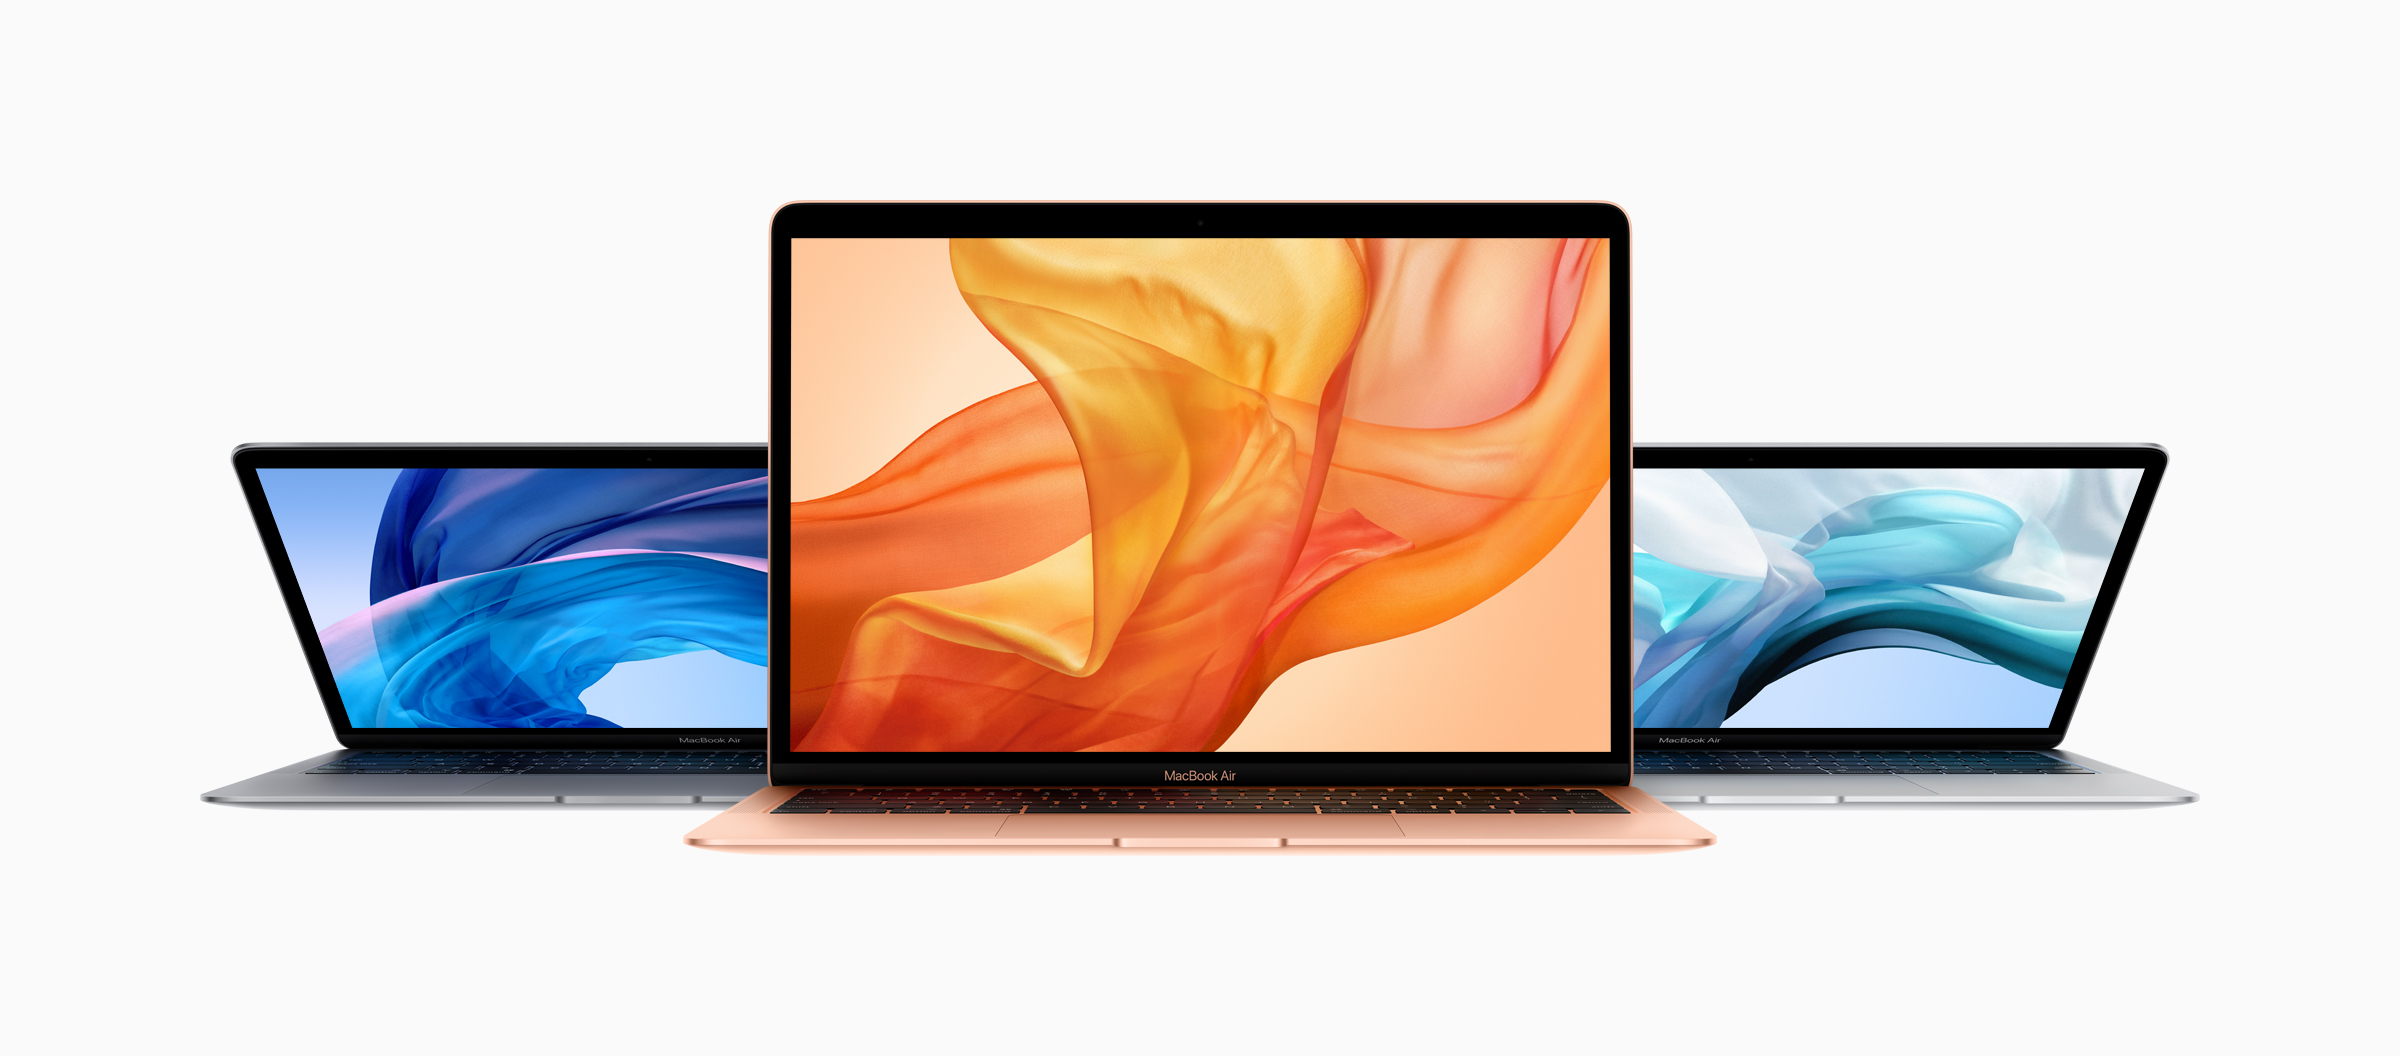 Yeni MacBook Air vs Windows rakipleri